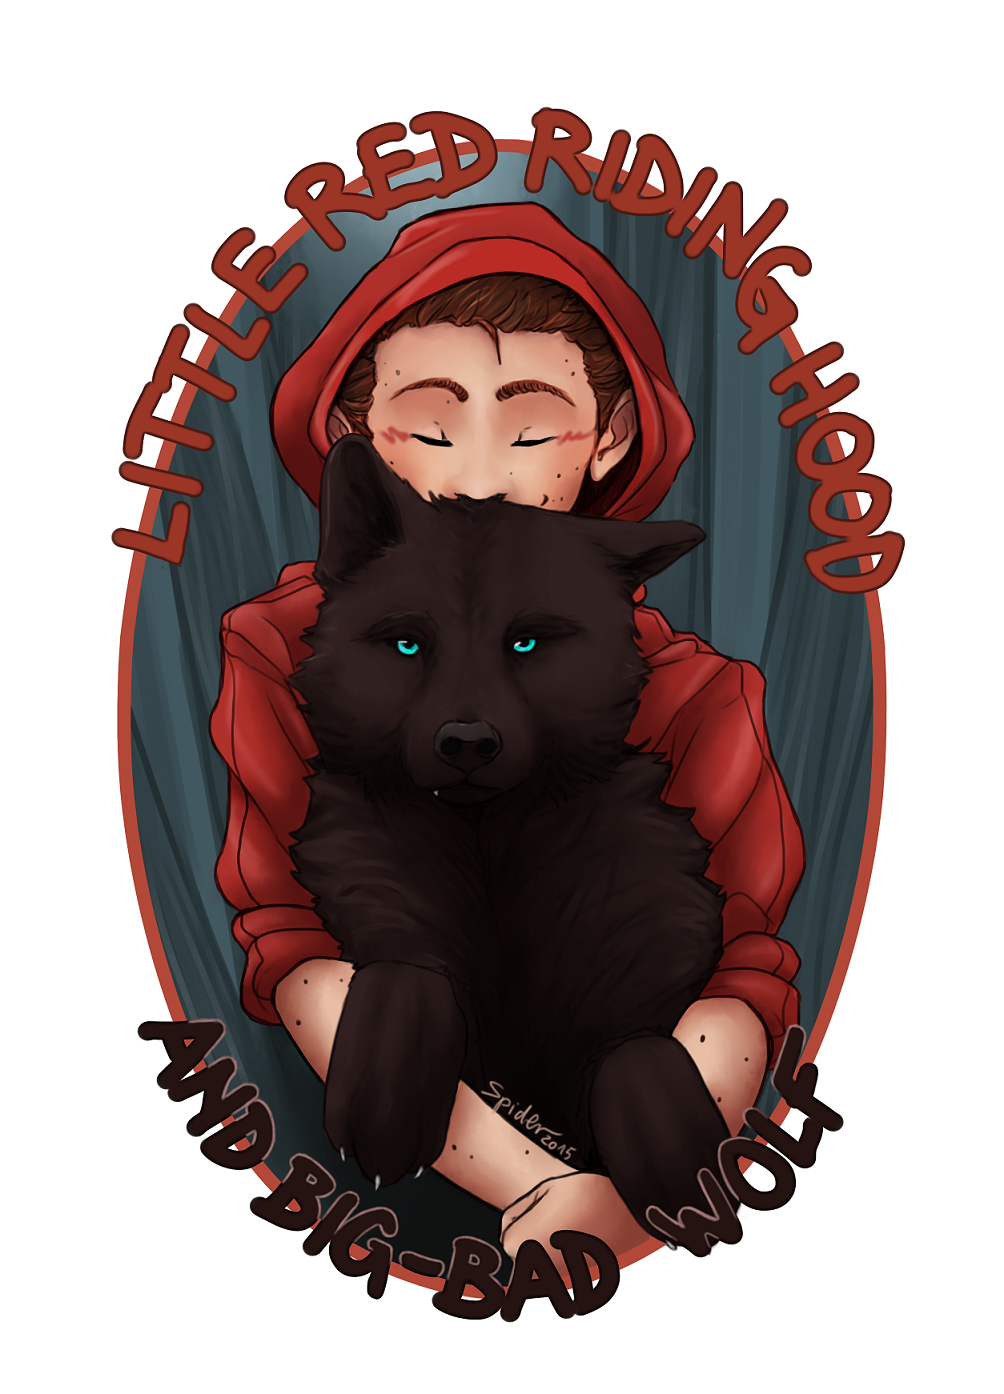 spider999now: i just love how sterek fandom compares sterek with little red riding hood (as stiles) and big bad wolf (as derek) plus you just can't say no to wolf!derek ;D